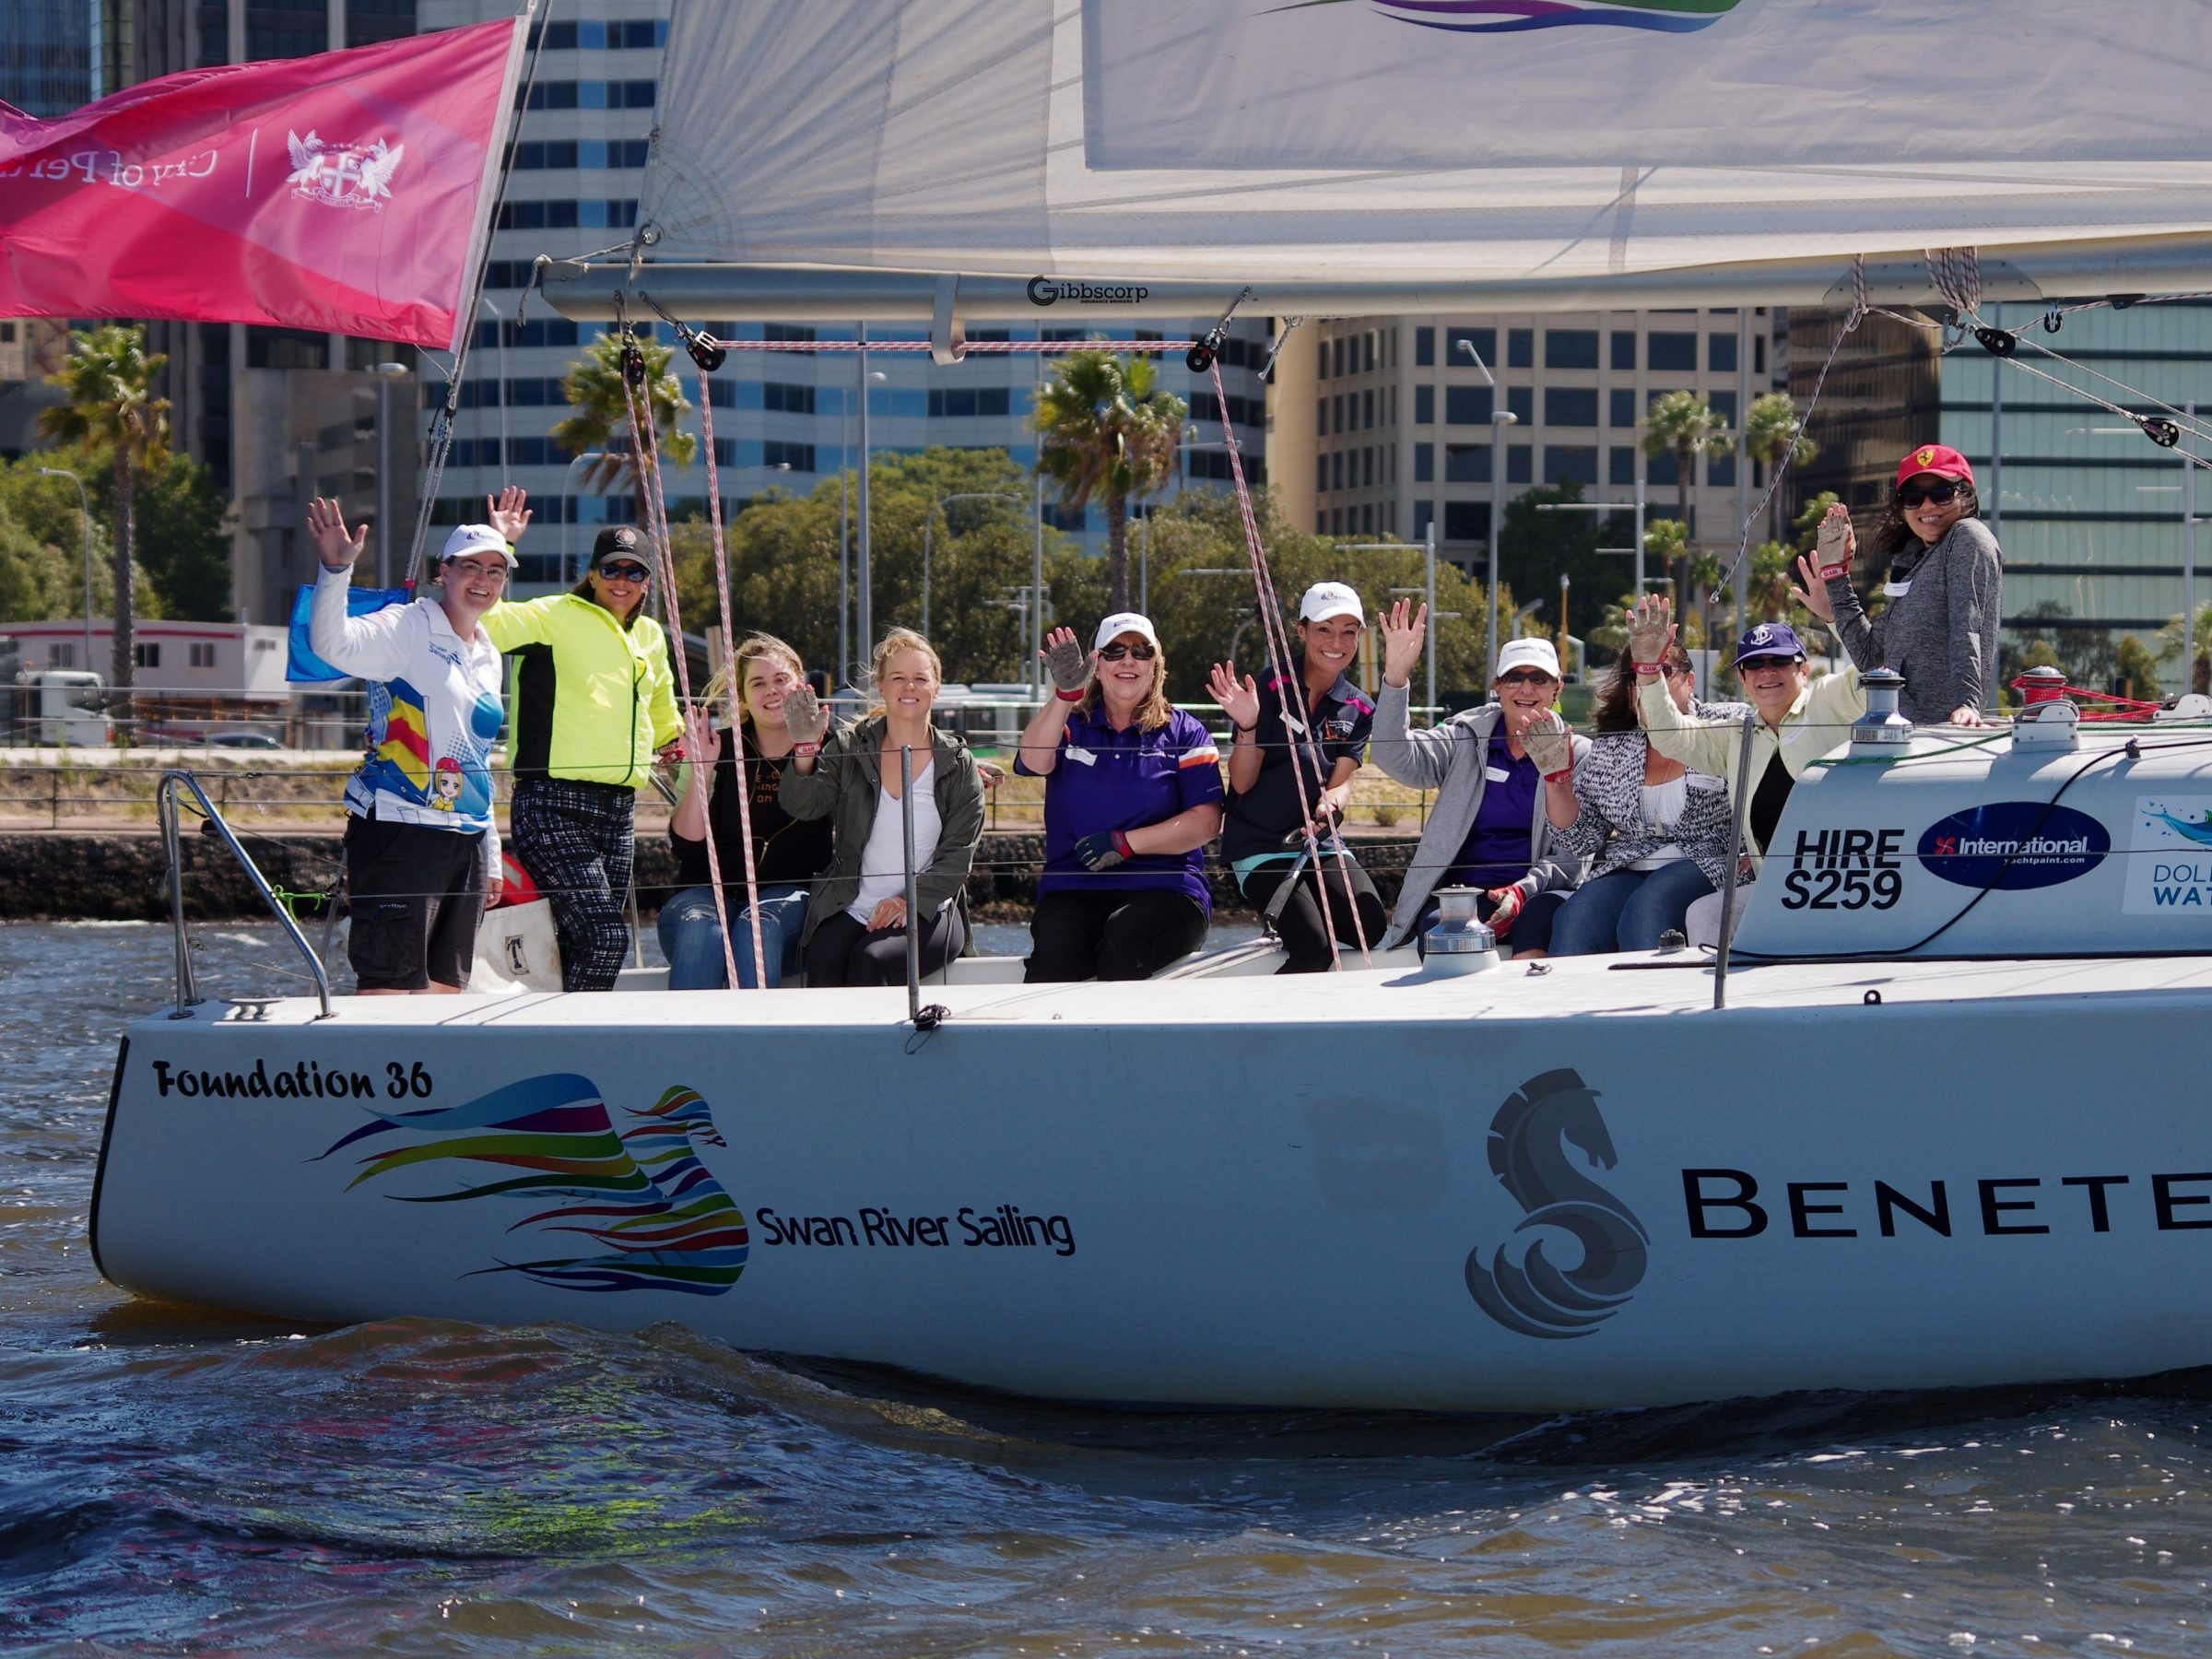 2019 city of Perth festival of sail women on water networking event